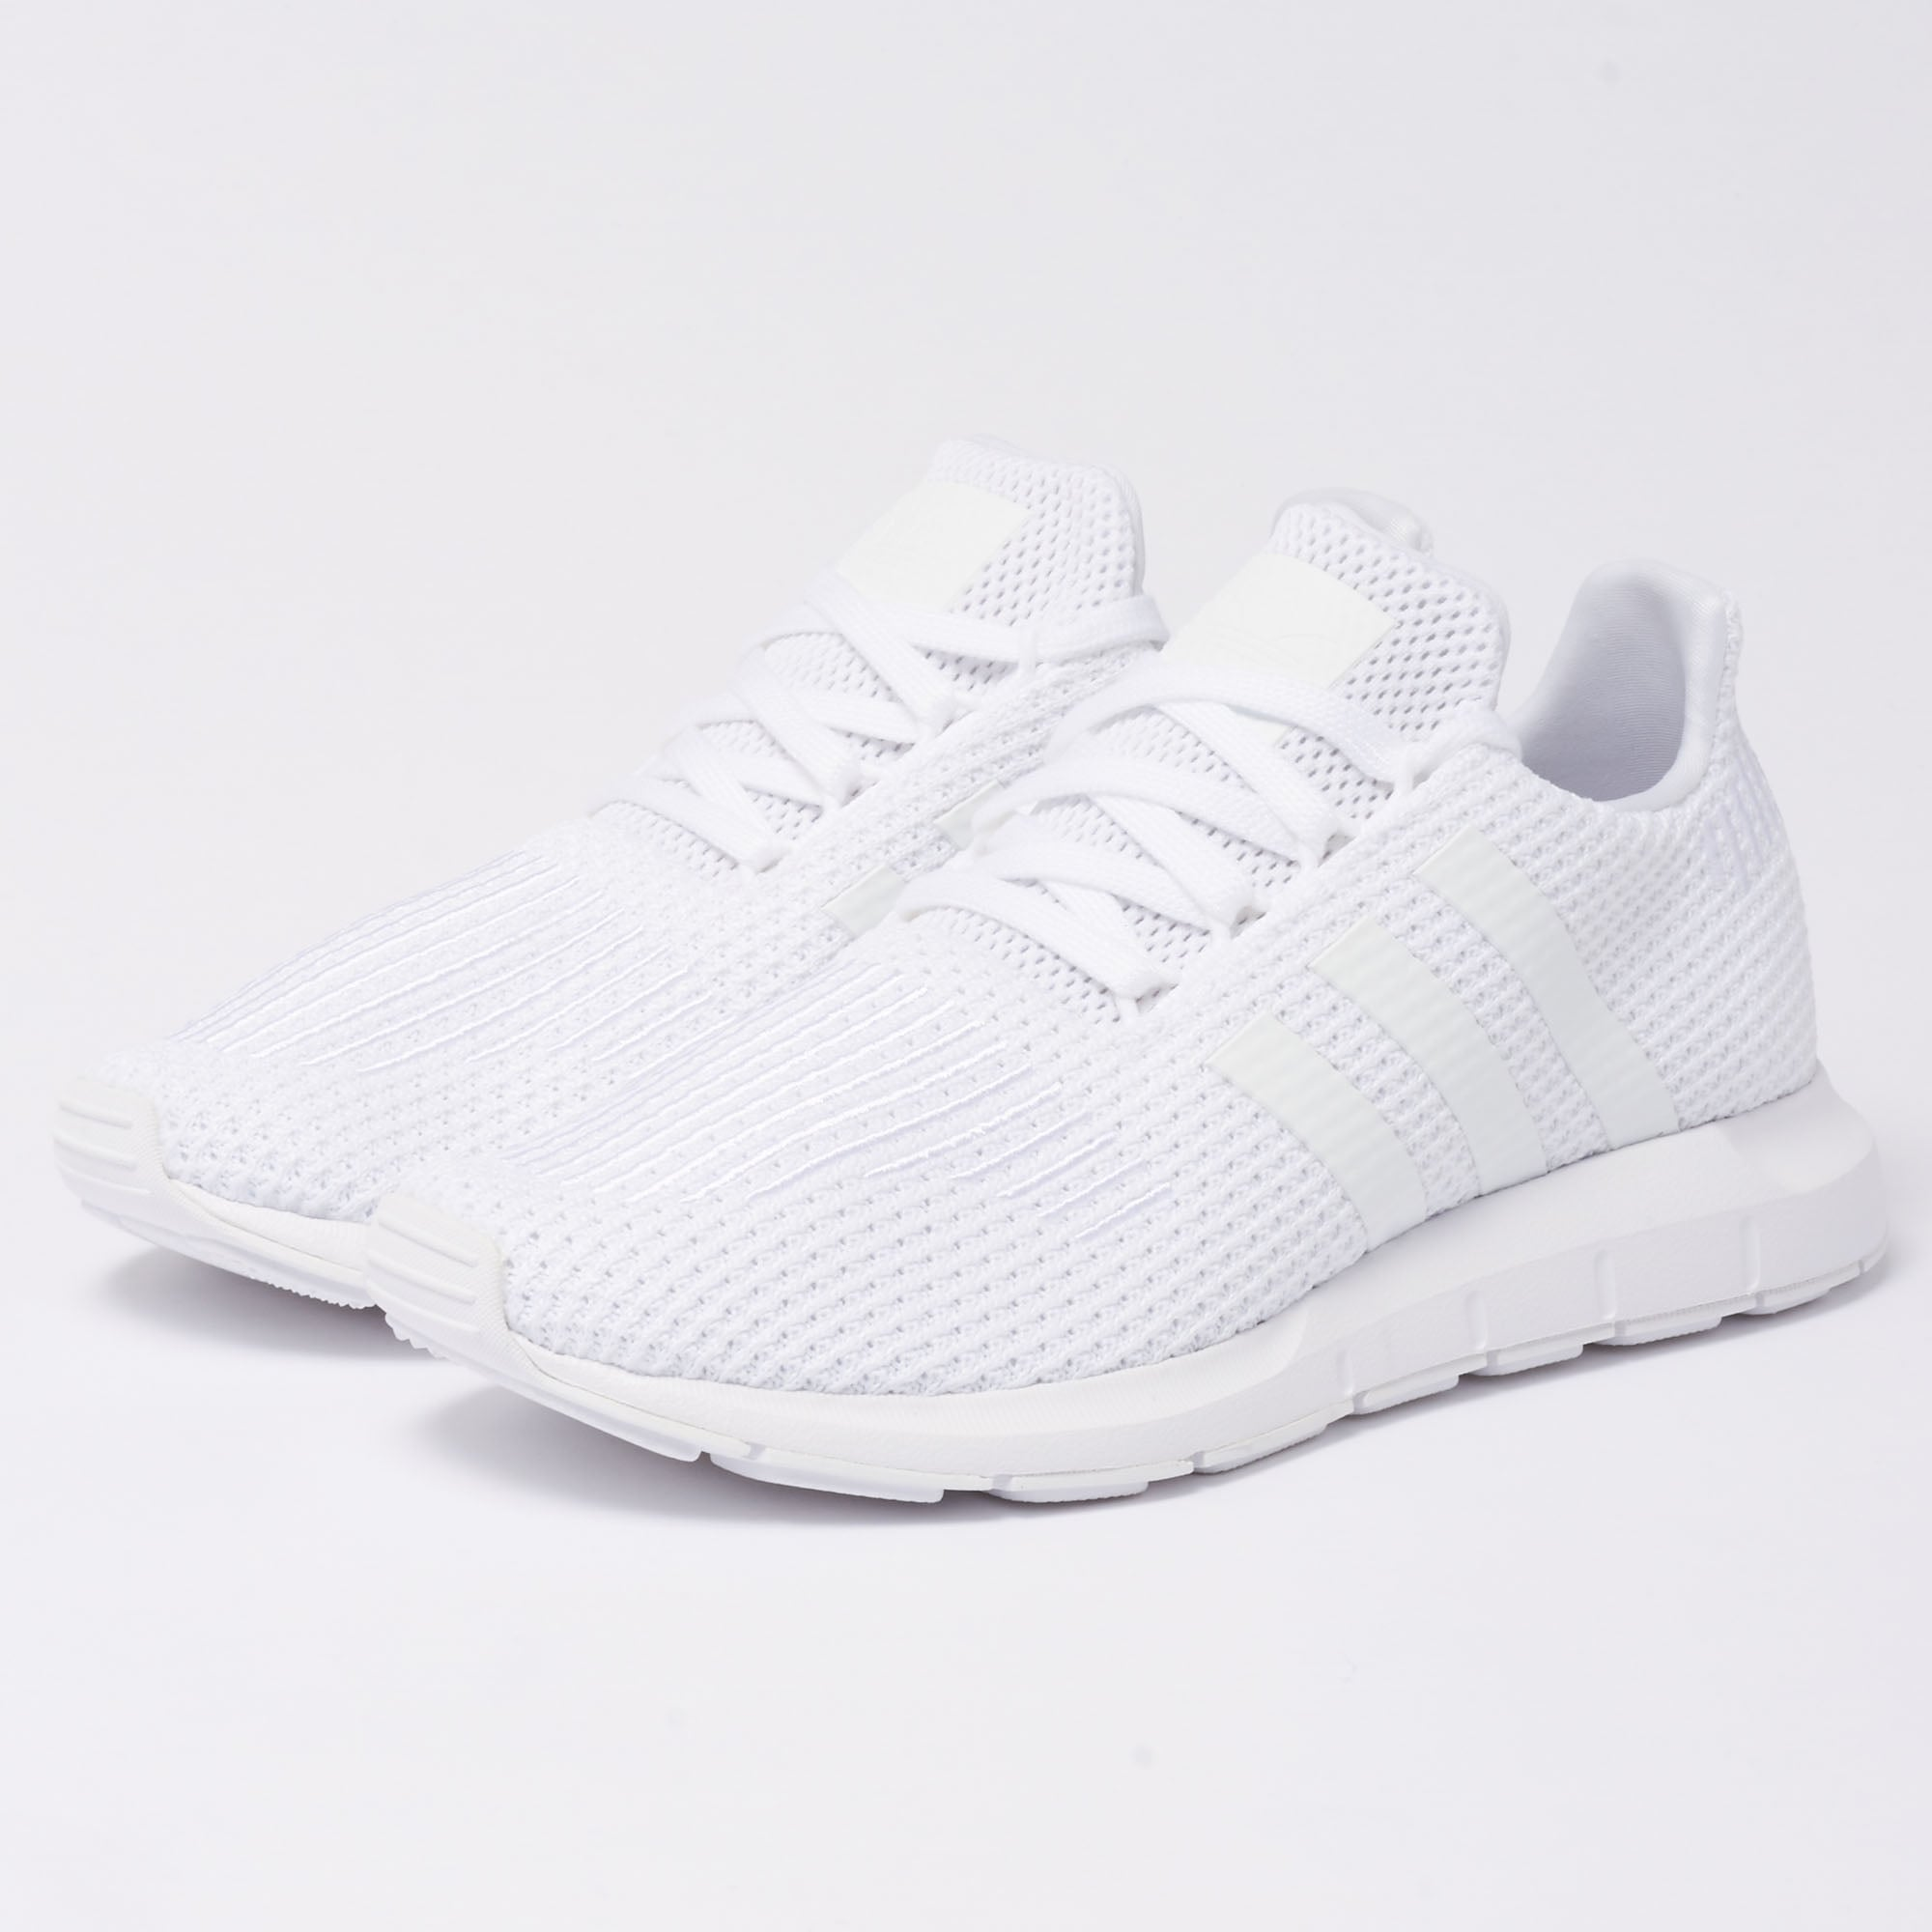 All White Adidas : Adidas | Best deals on trainers, running